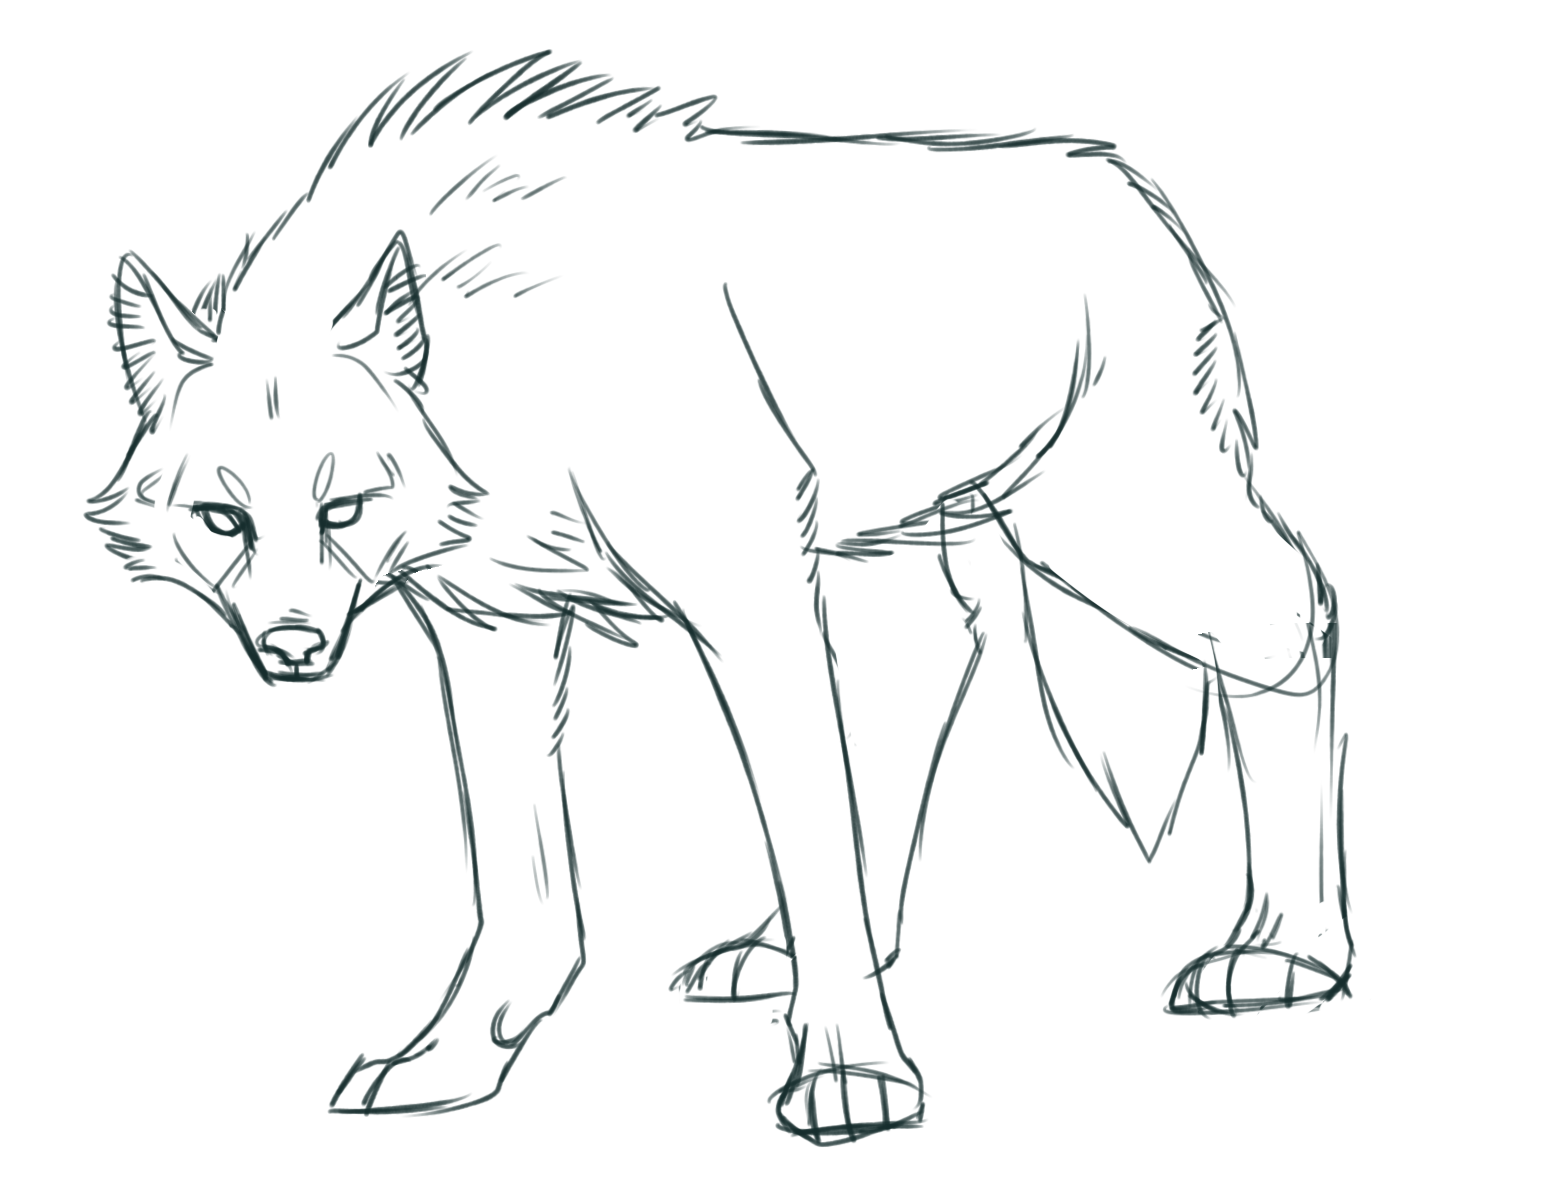 wolf front poses - HD1549×1195